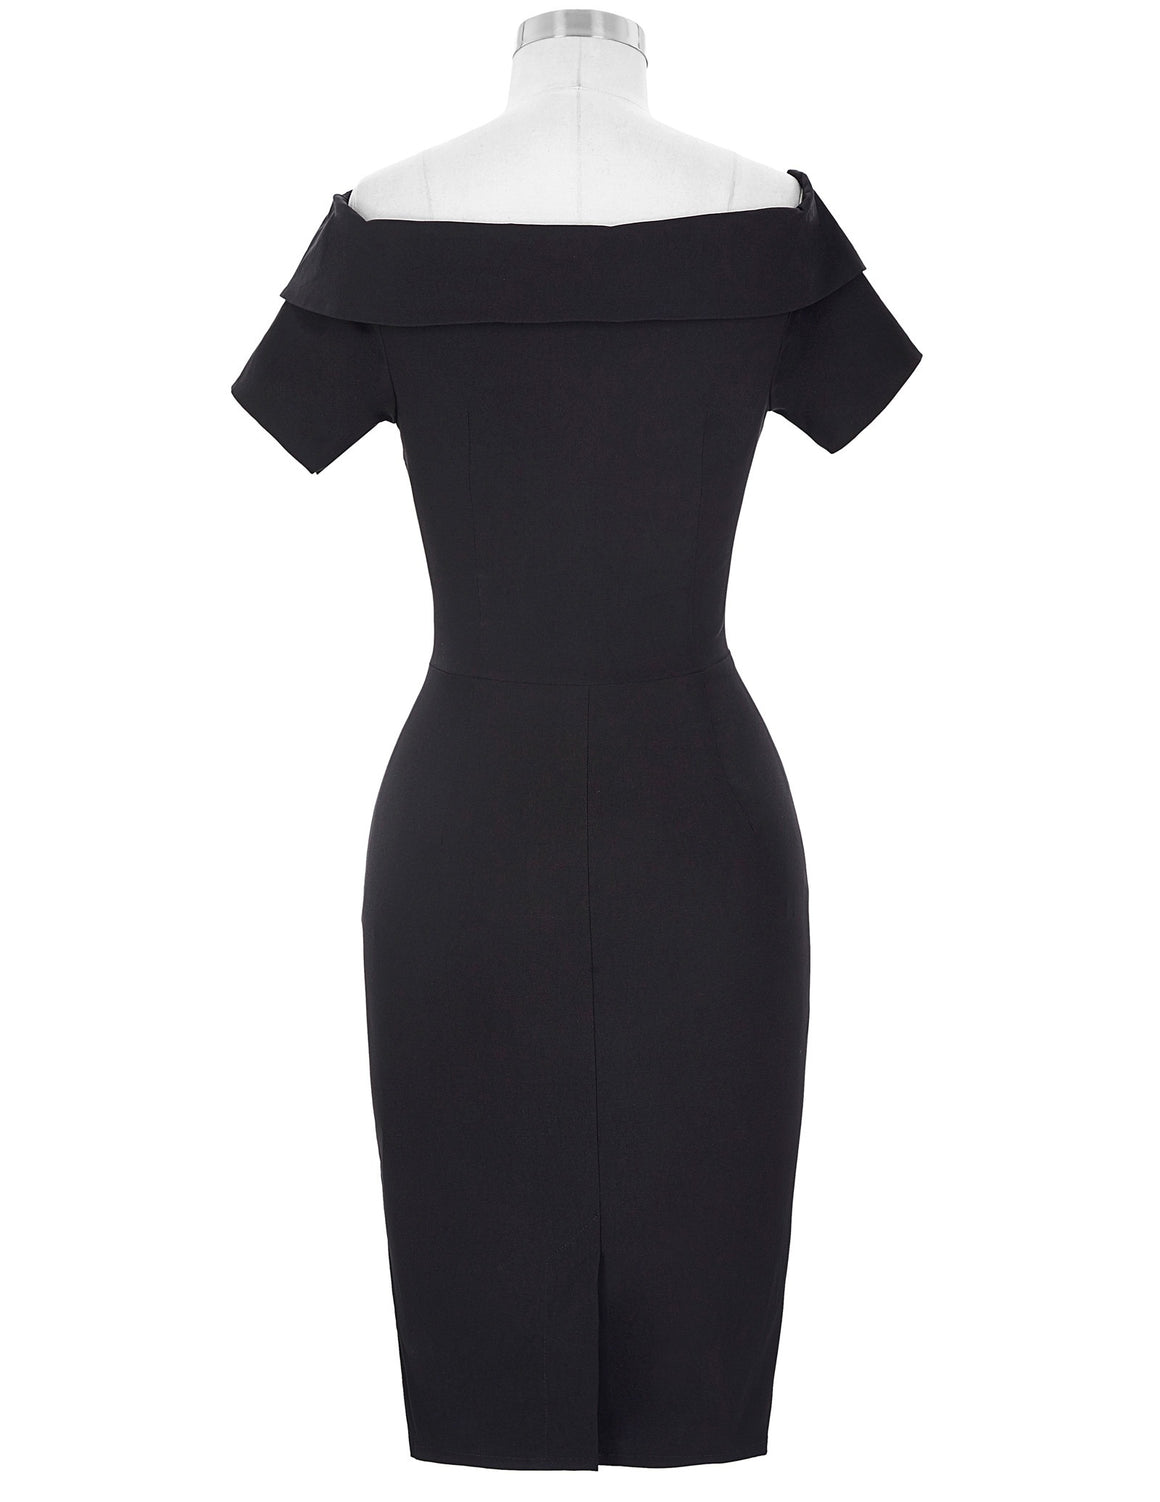 THE HARLOW WIGGLE DRESS BY PONYBOY VINTAGE CLOTHING HAS ARRIVED!